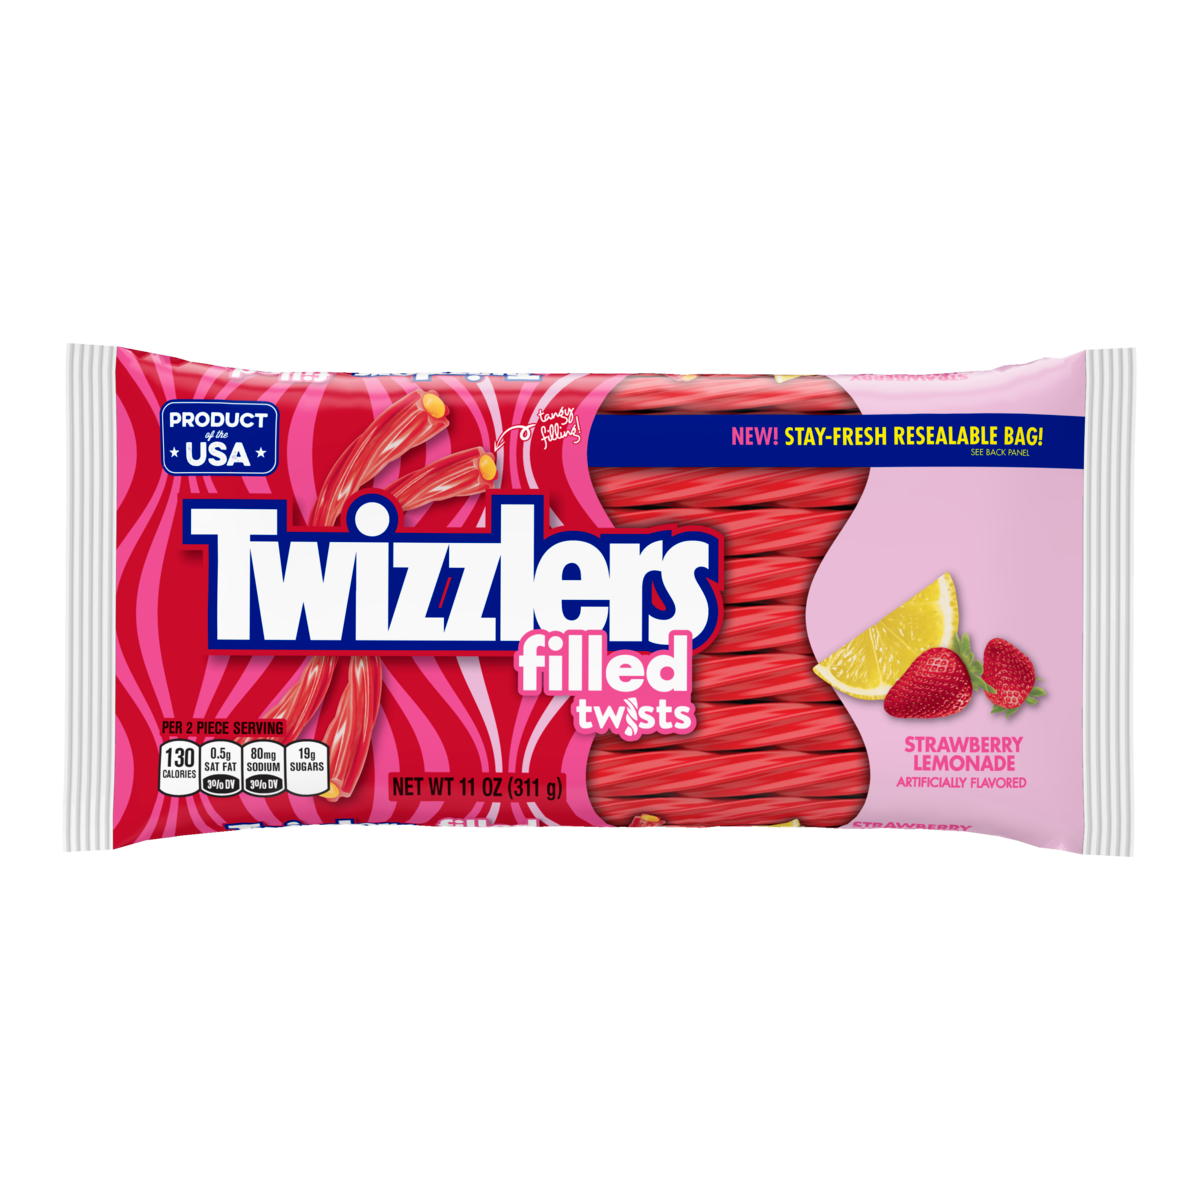 Twizzlers Filled Twists Strawberry Lemonade